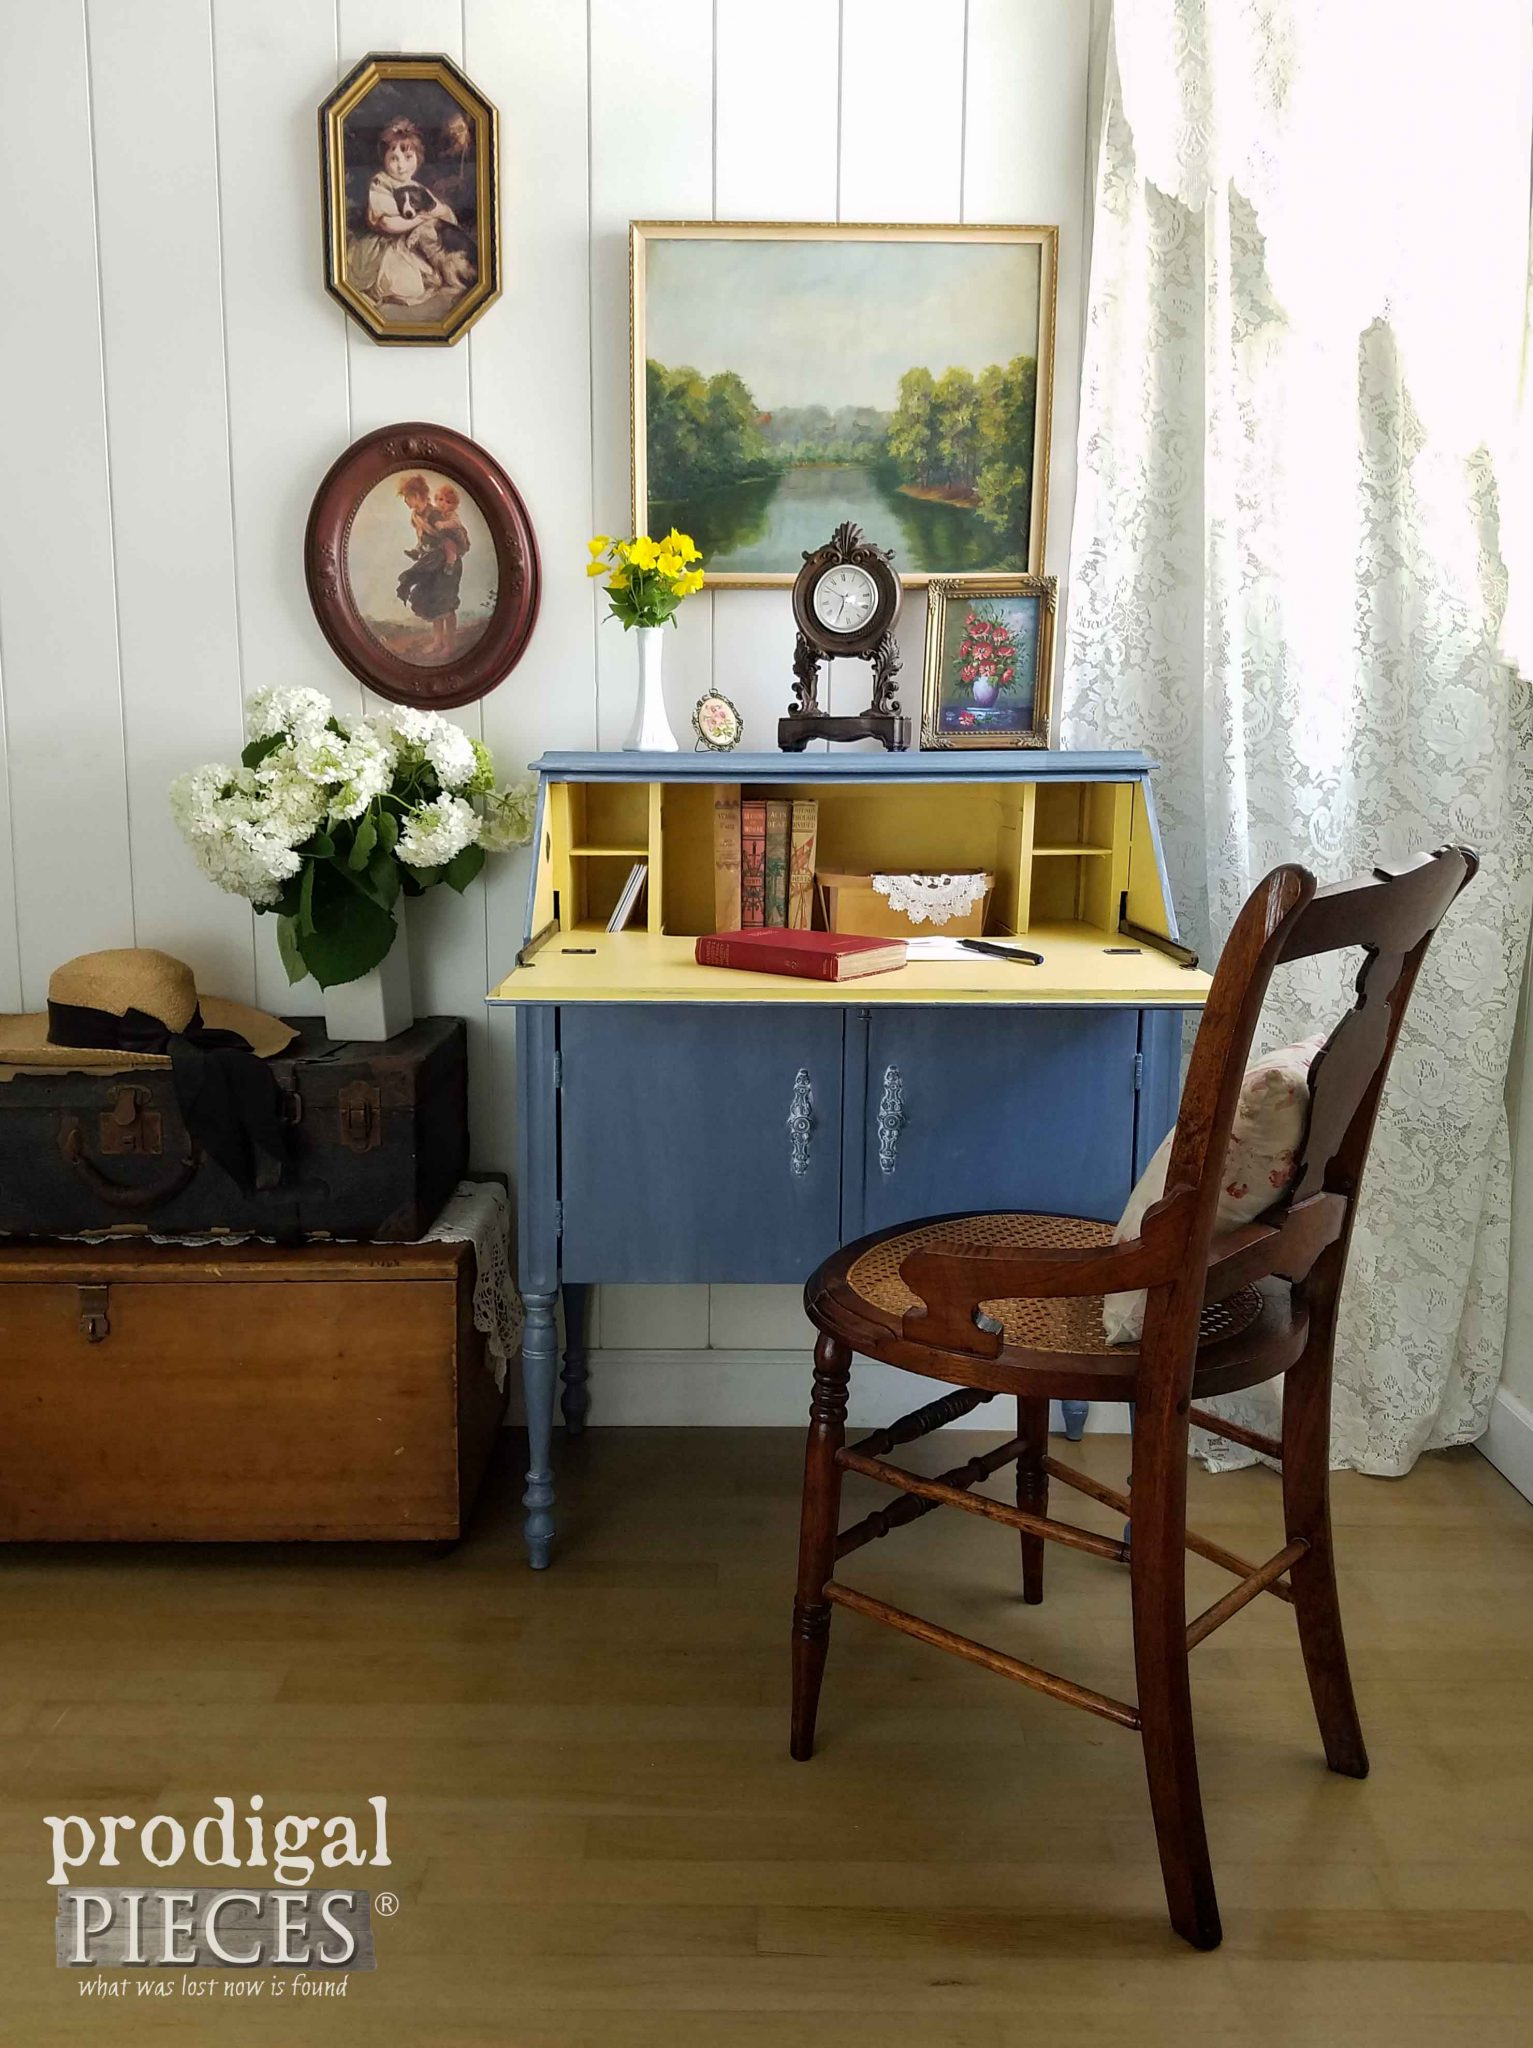 English Style Secretary Desk with blue and a pop of yellow by Prodigal Pieces | prodigalpieces.com